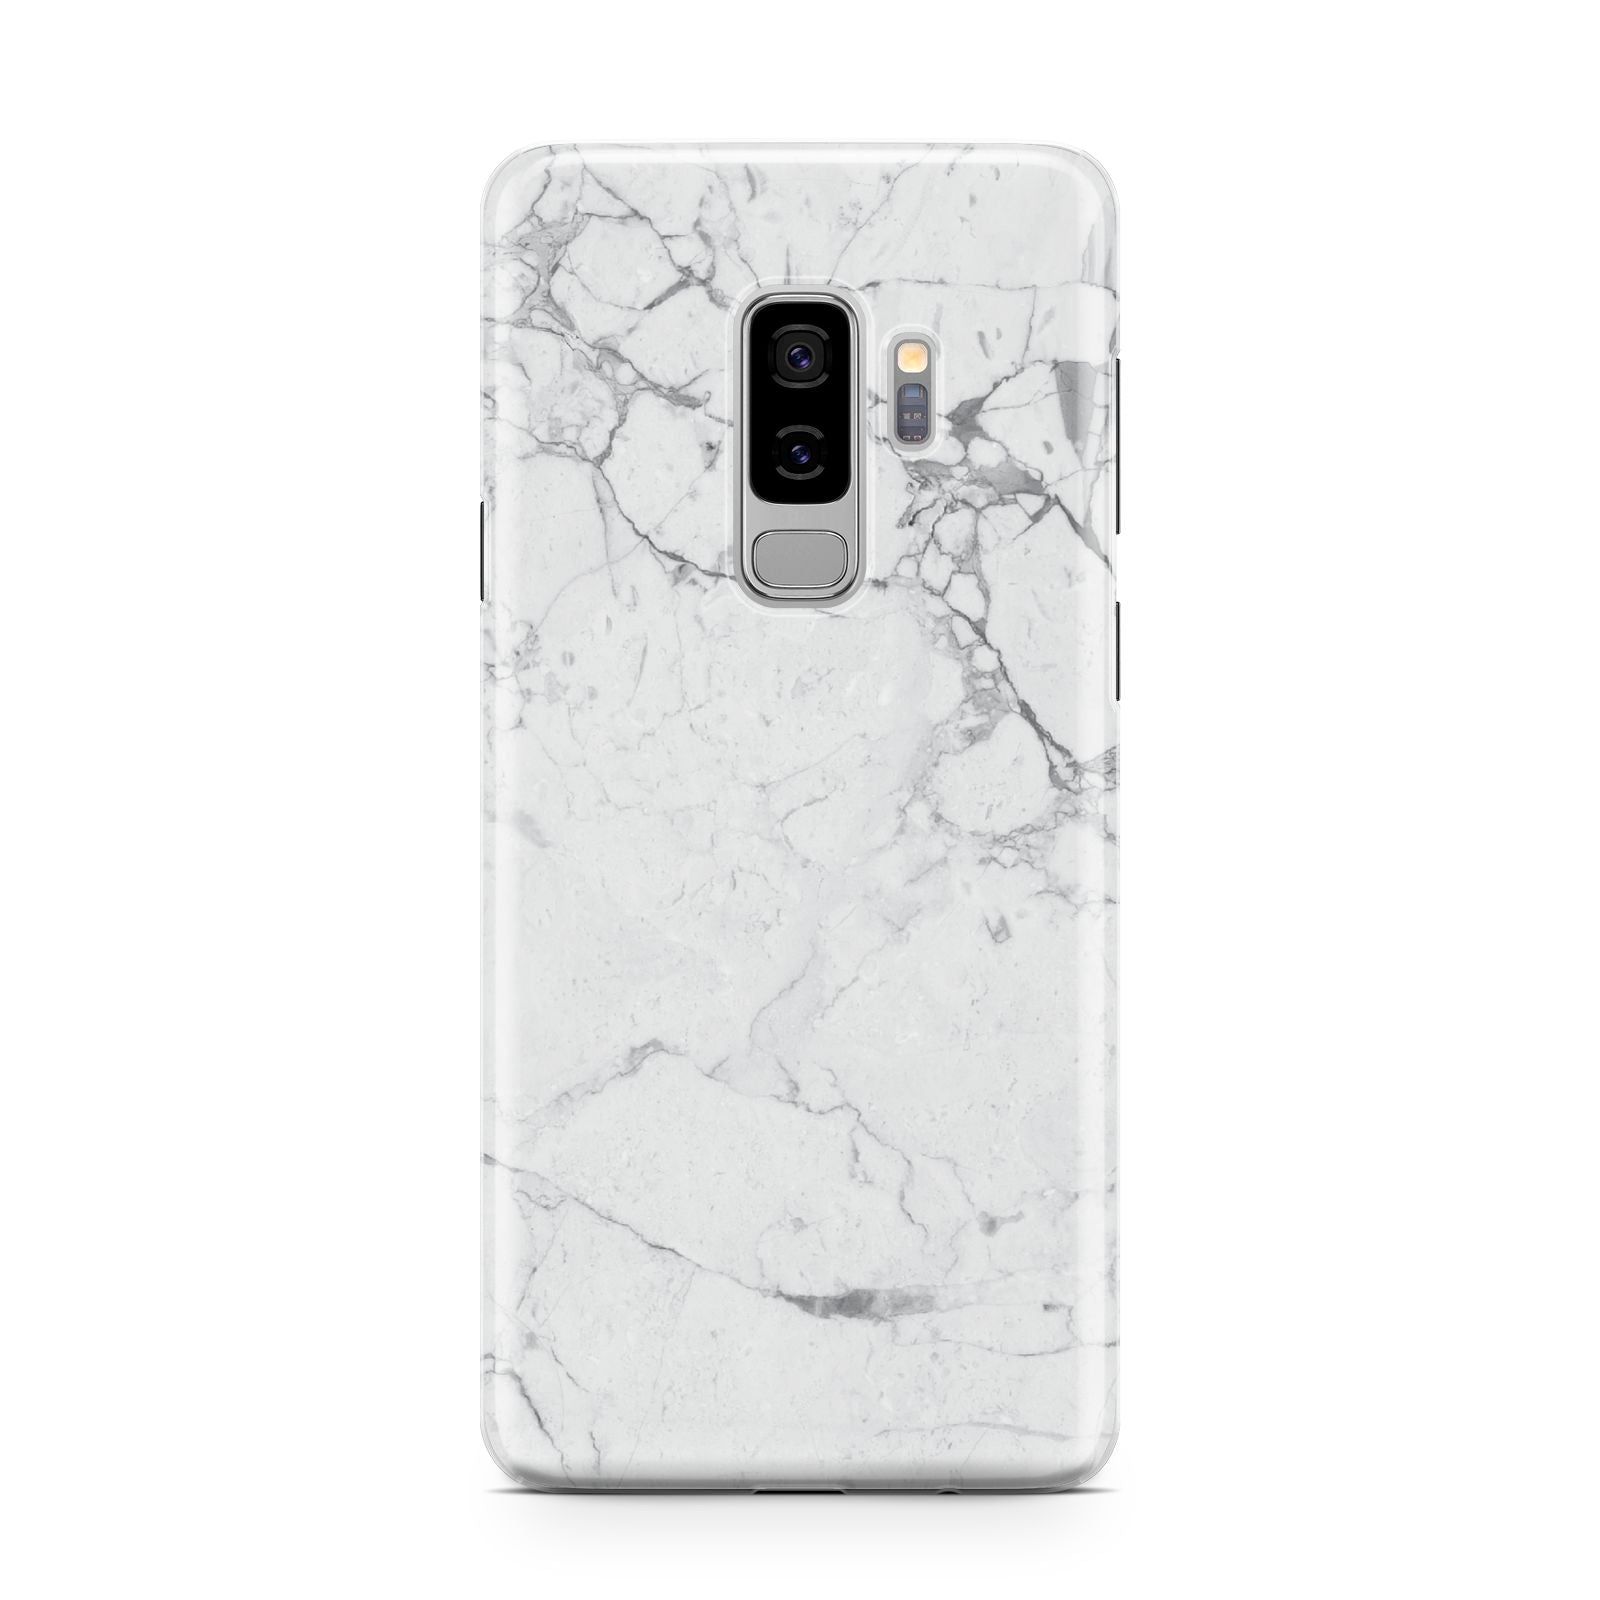 Faux Marble Effect Grey White Samsung Galaxy S9 Plus Case on Silver phone